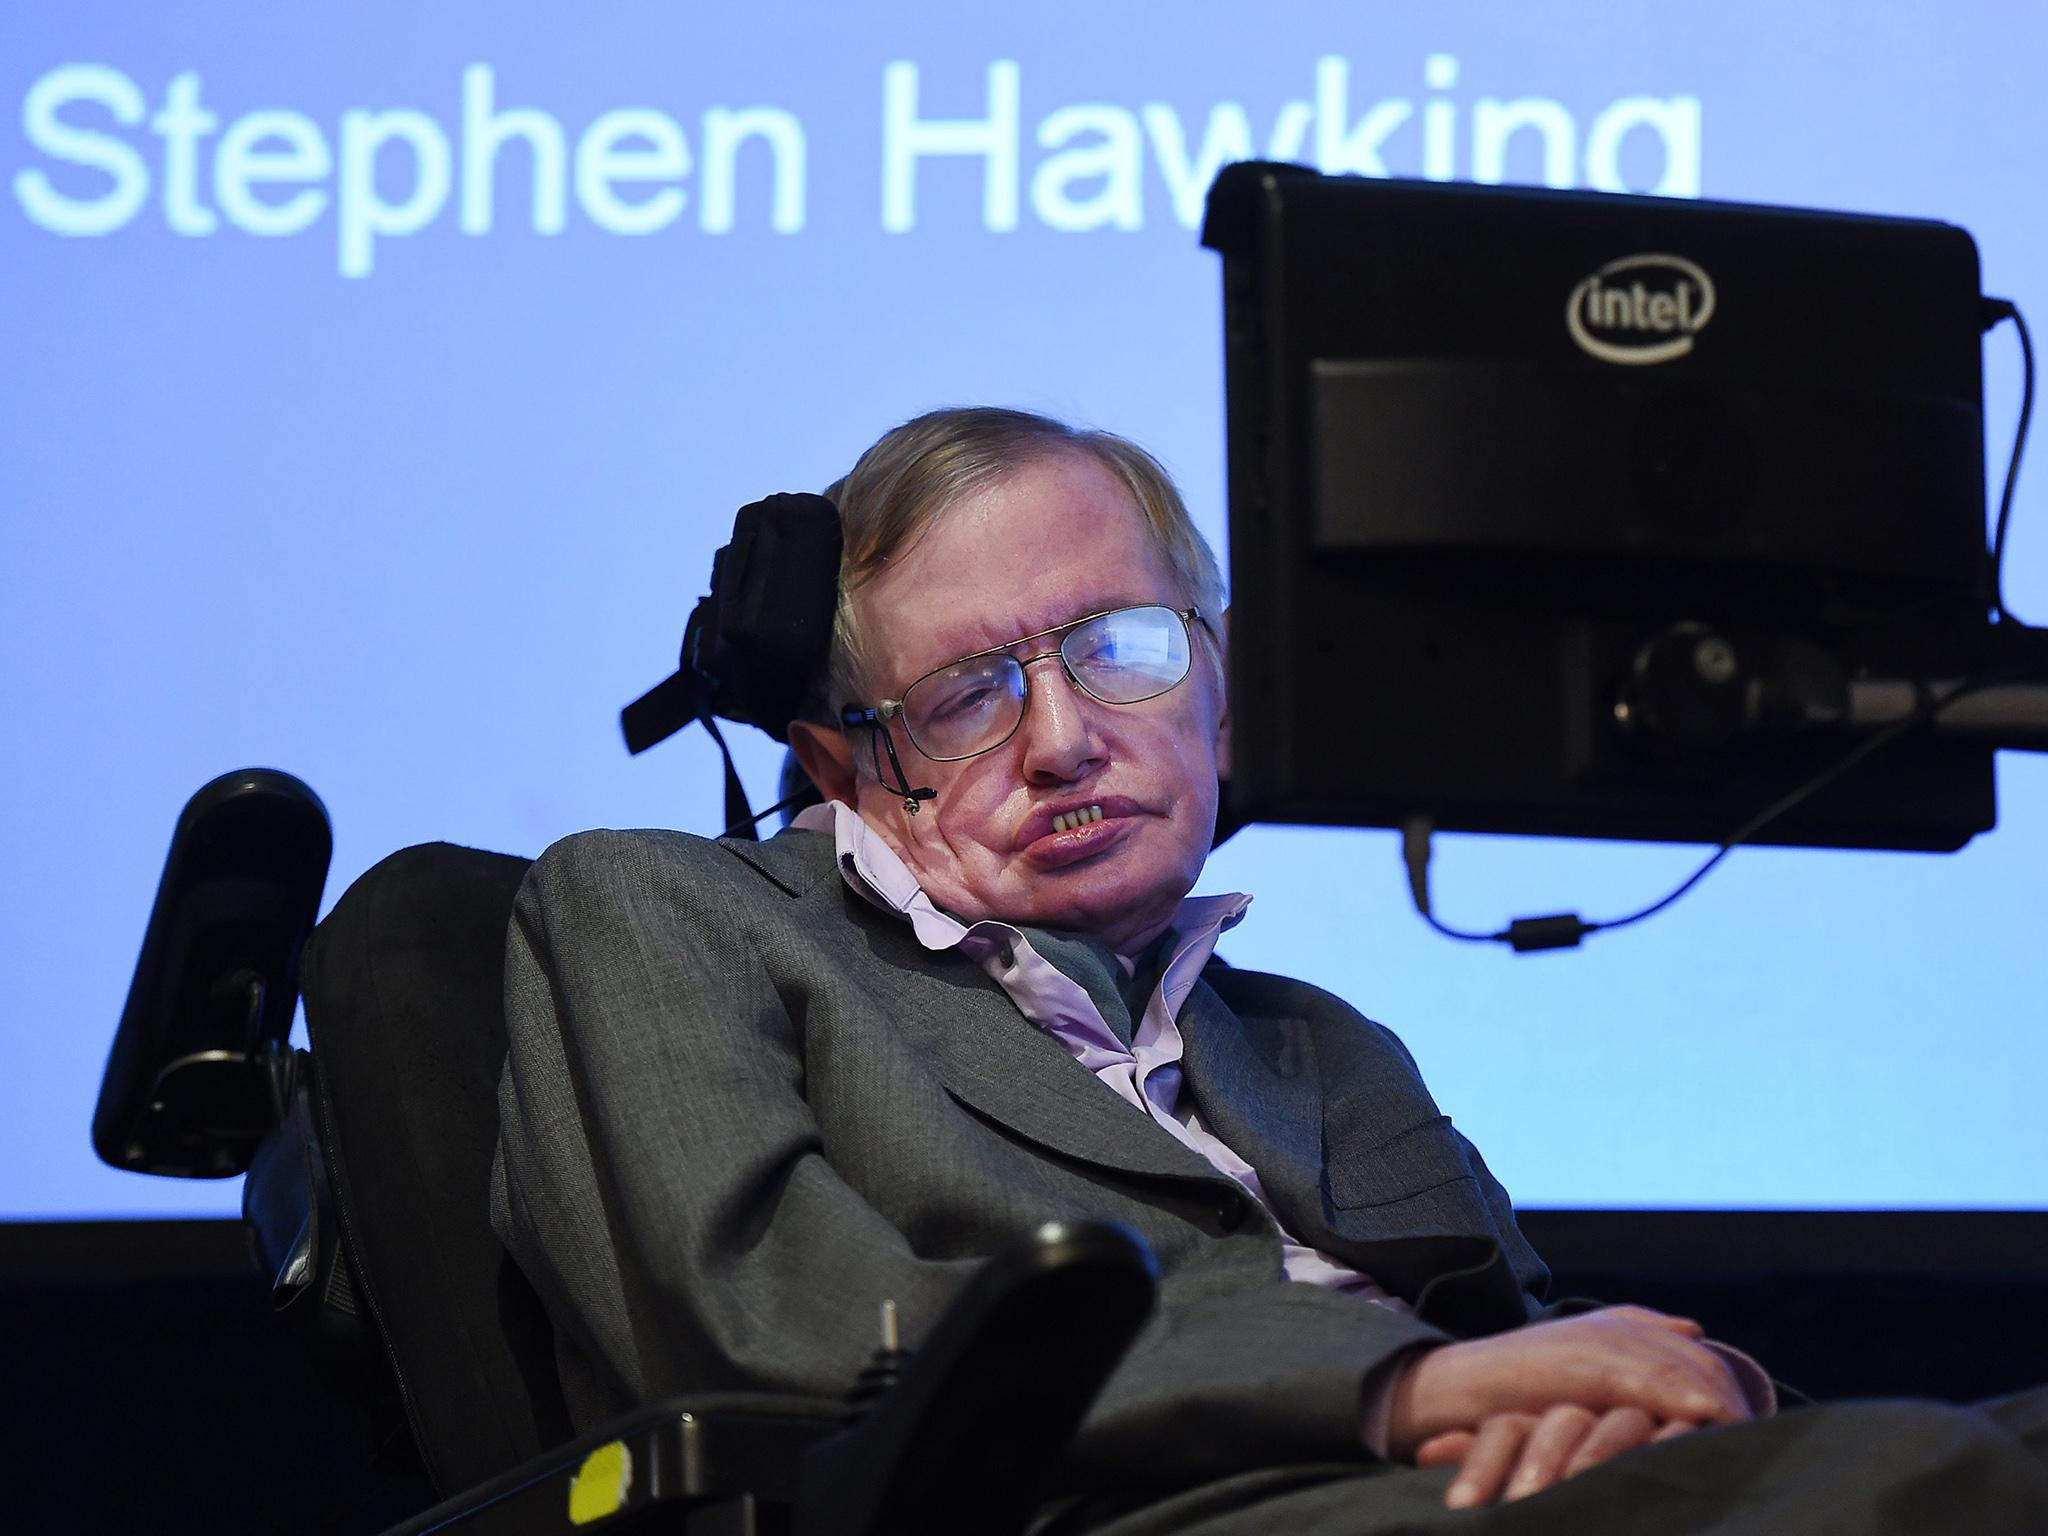 Stephen Hawking Image: Stephen Hawking's A Brief History Of Time: Read The